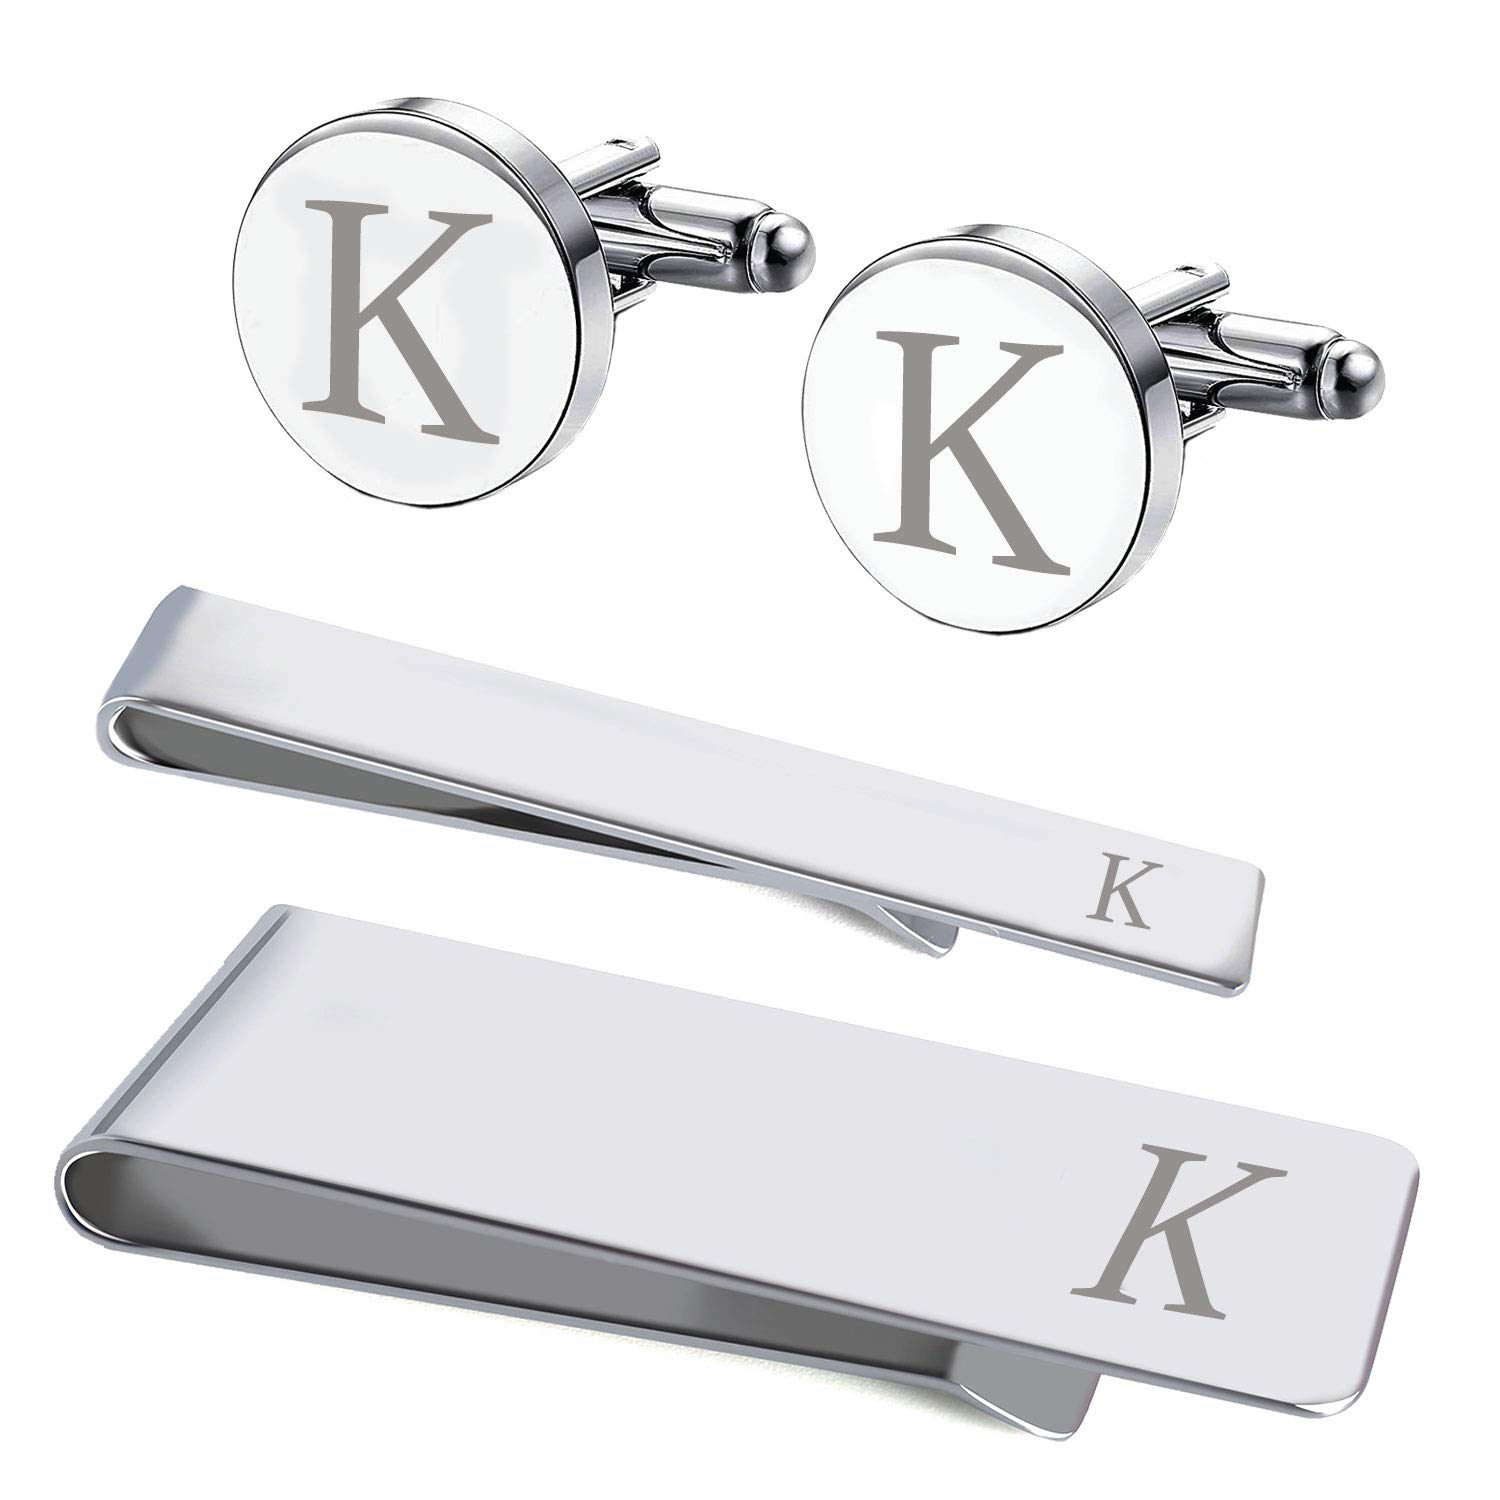 BodyJ4You 4PC Cufflinks Tie Bar Money Clip Button Shirt Personalized Initials Letter K Gift Set